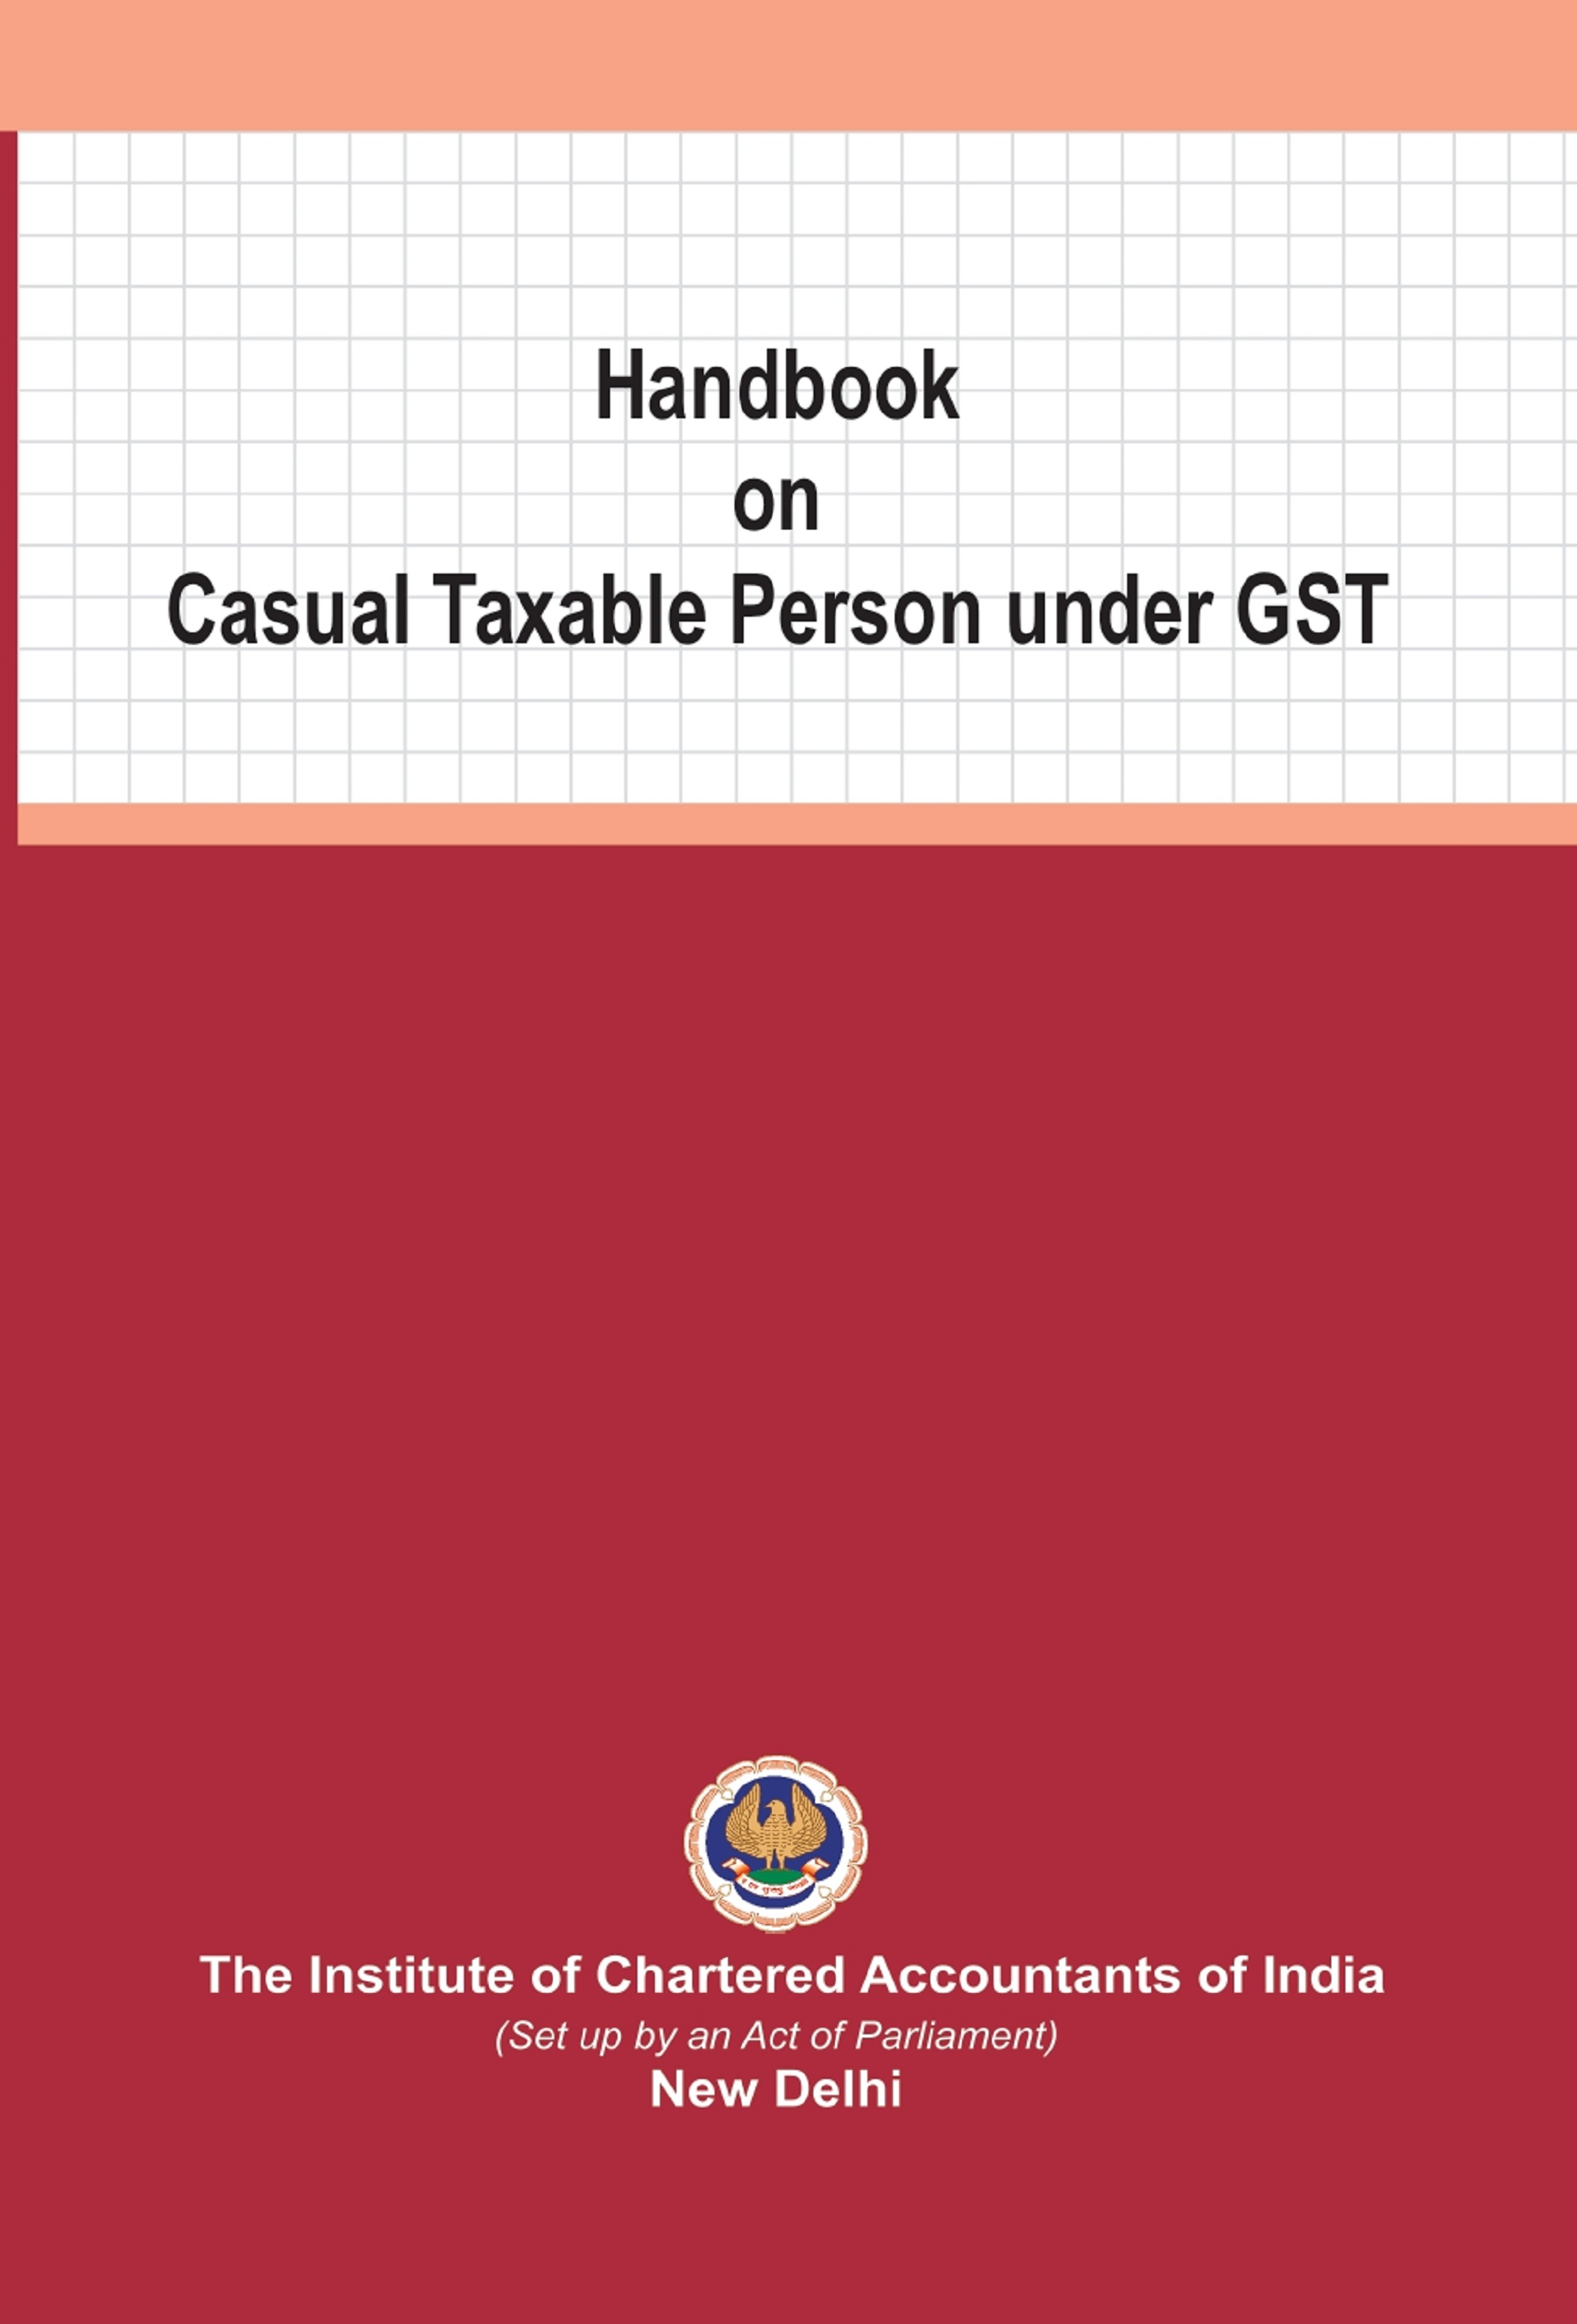 Handbook on Casual Taxable Person under GST (May, 2020)